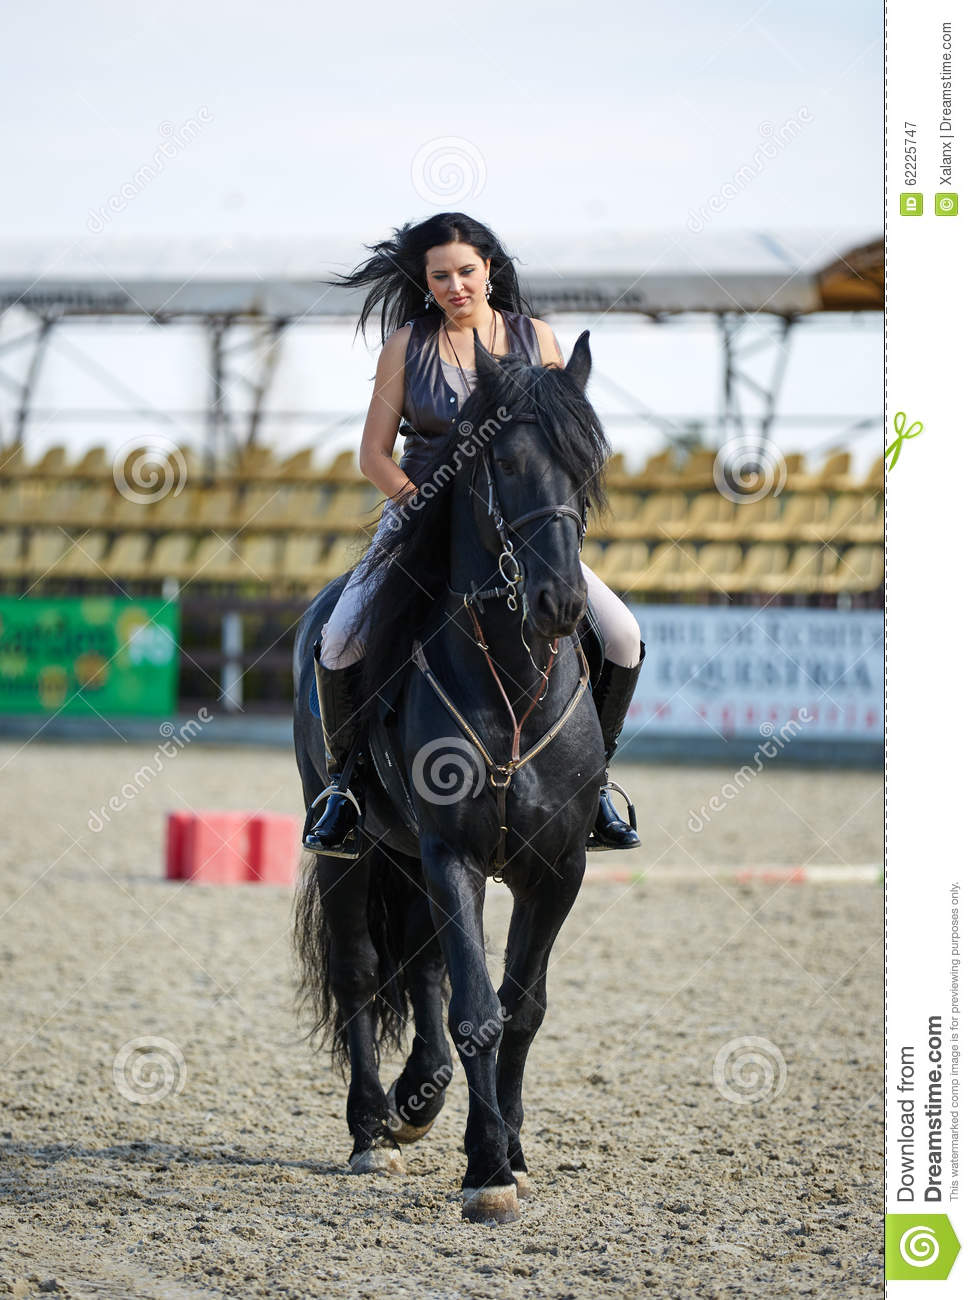 Woman astride a horse